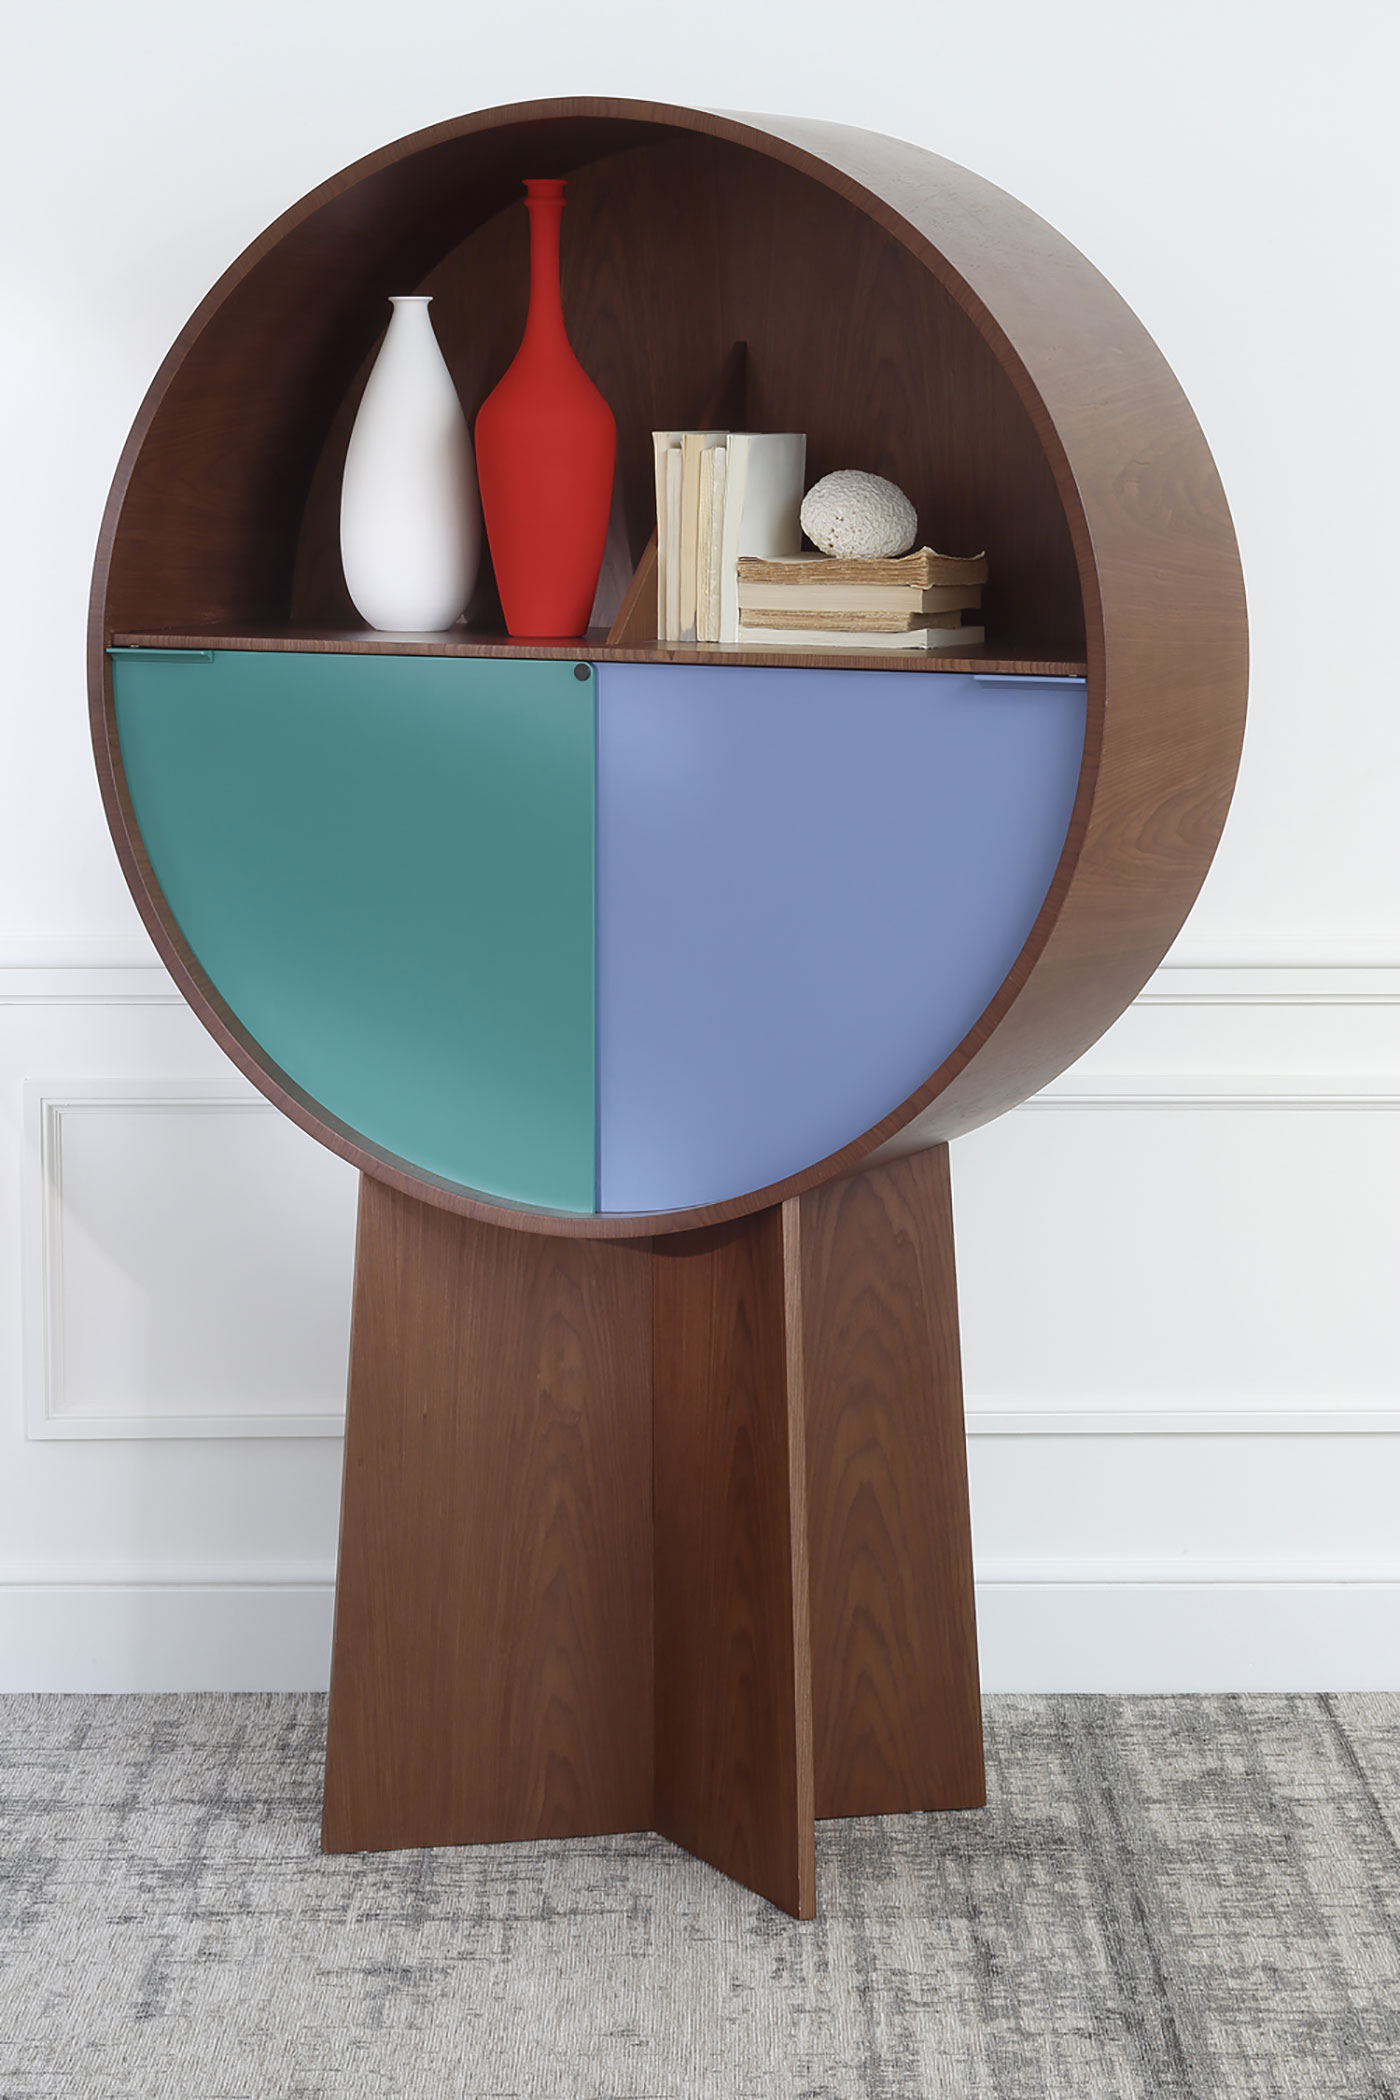 Luna Cabinet by Patricia Urquiola for Coedition